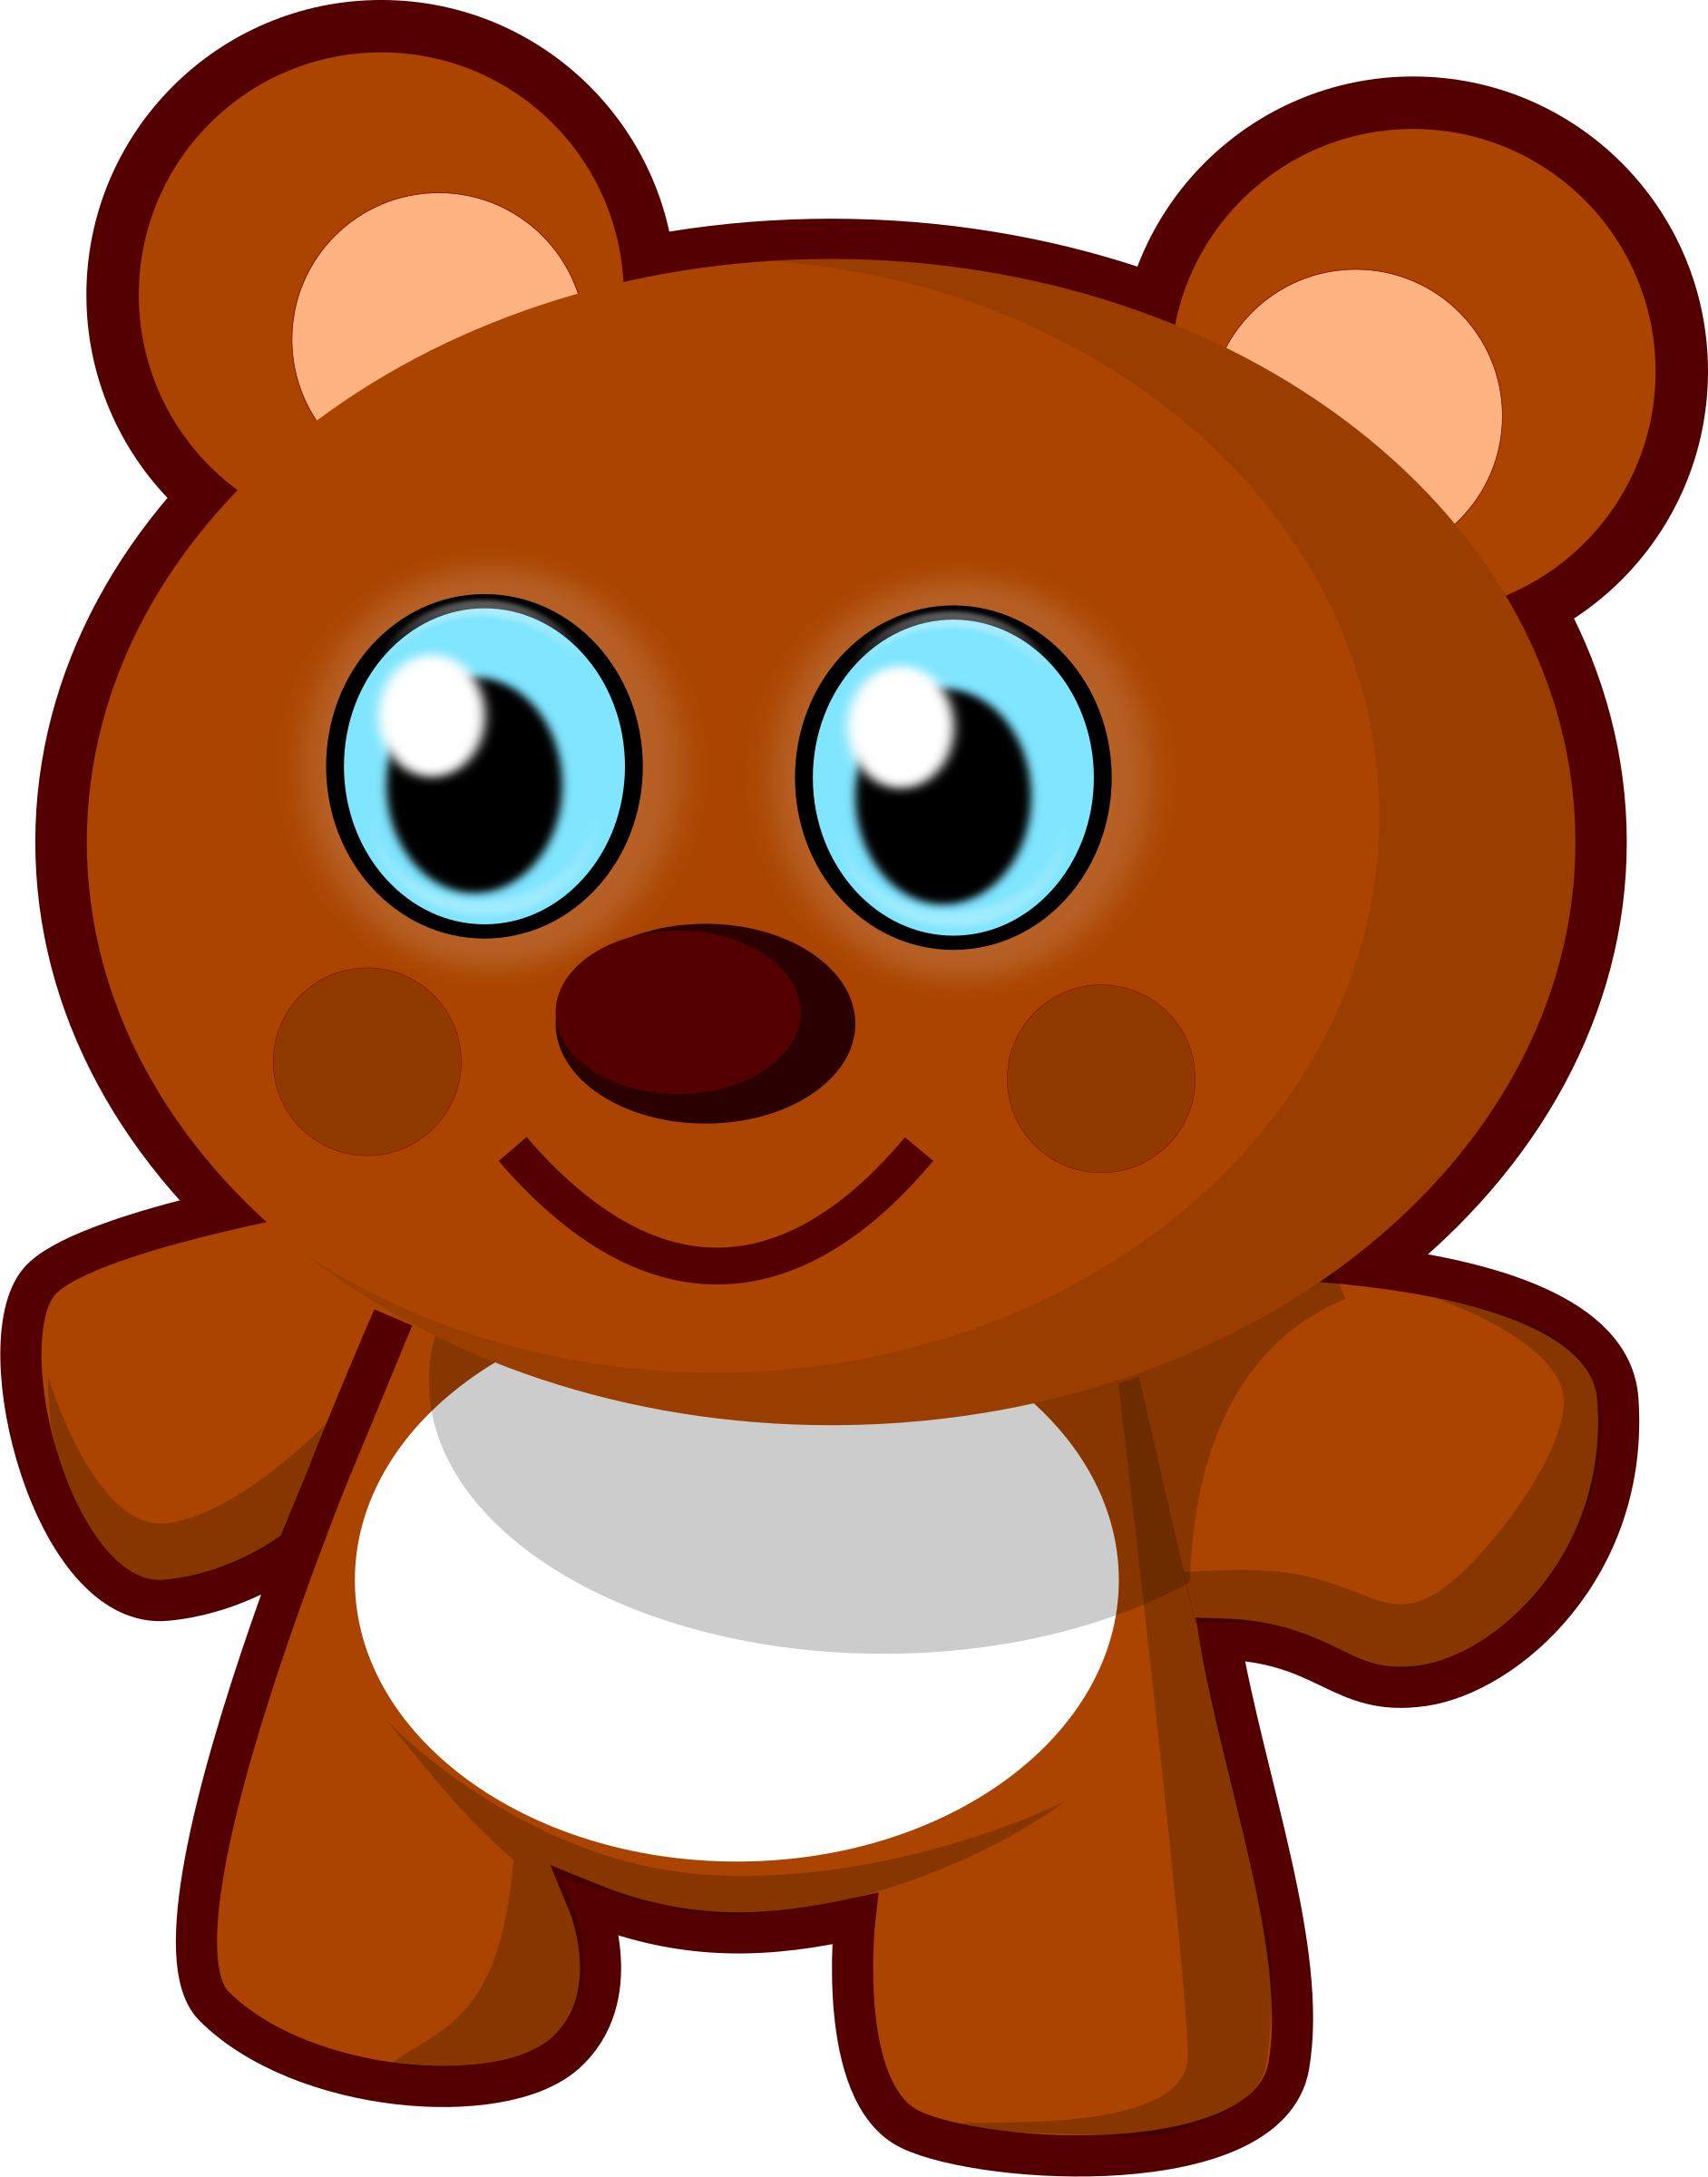 Free clipart toy. Little bear big image